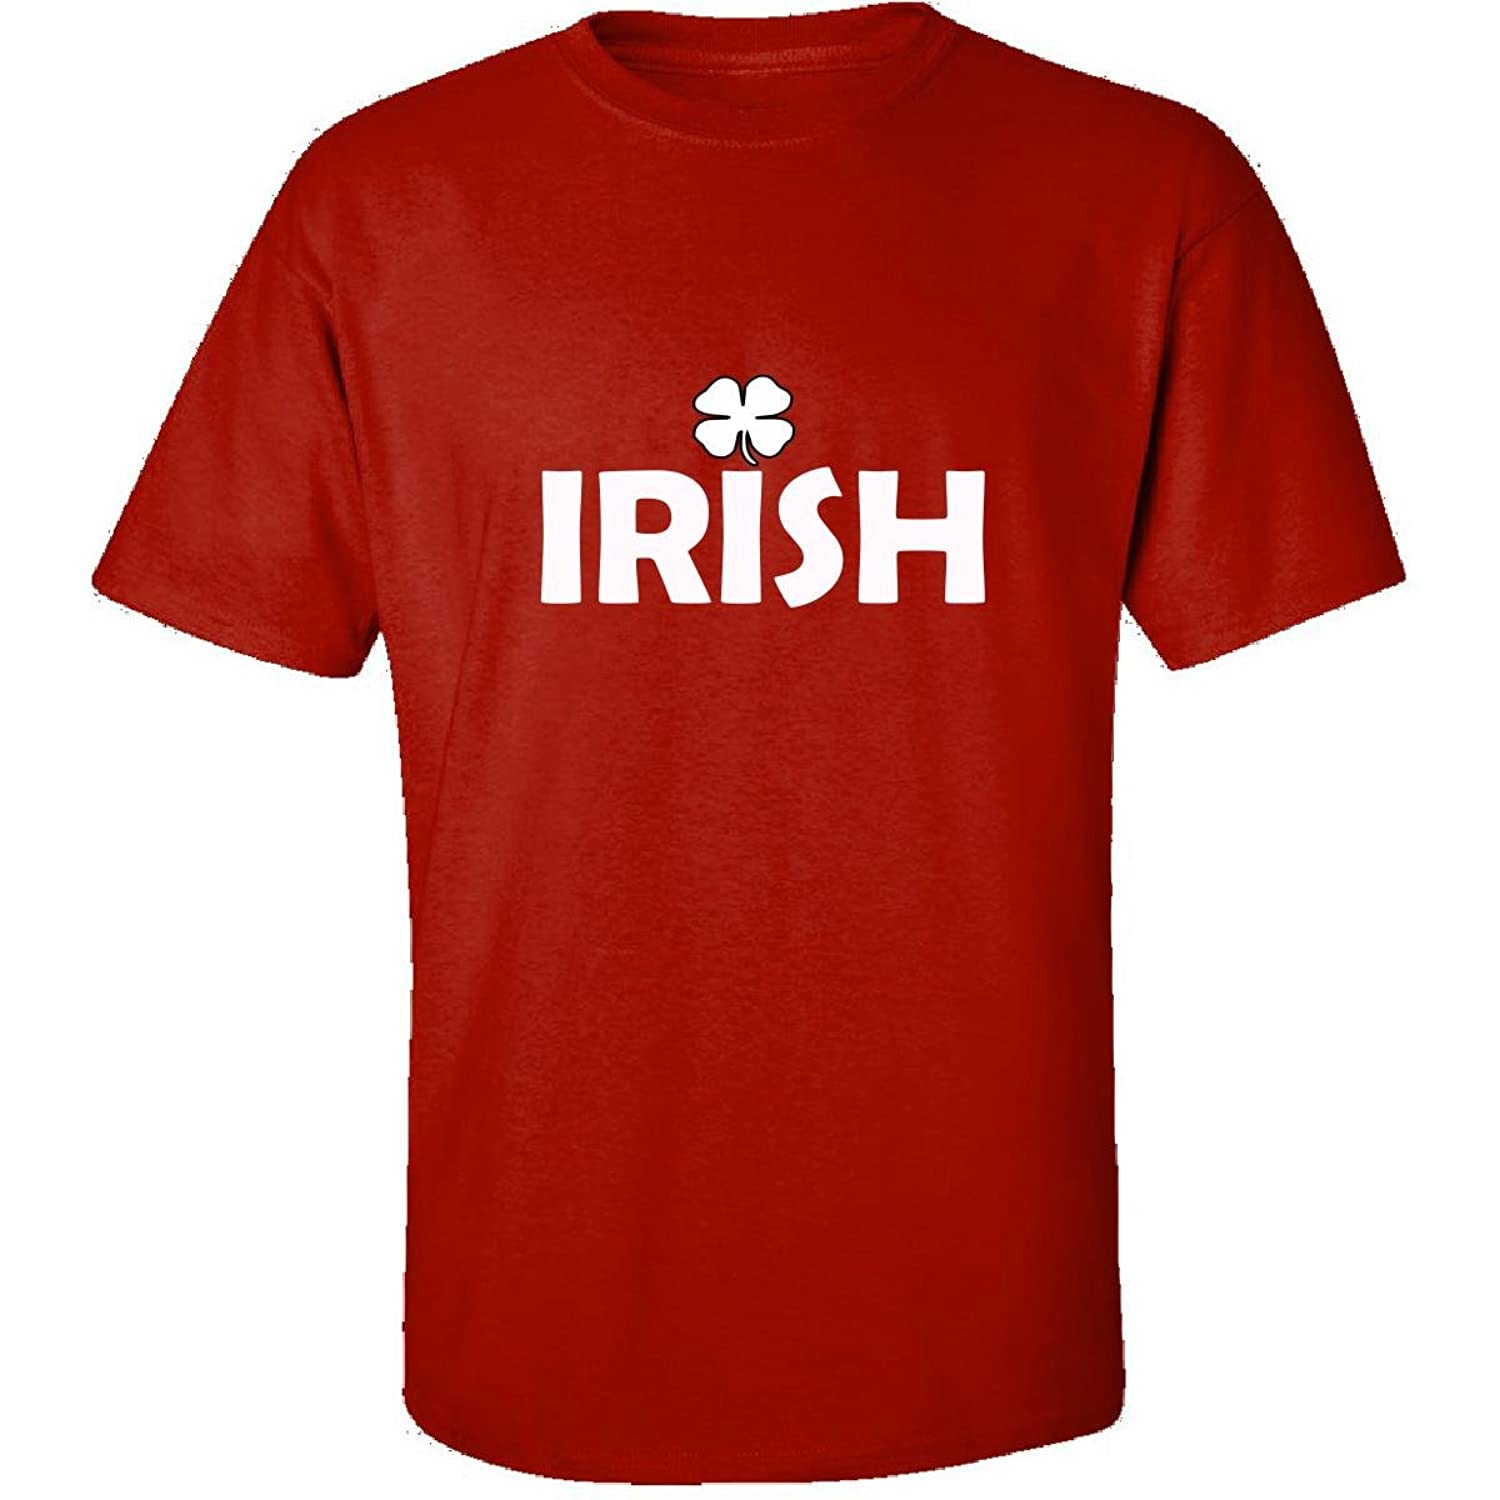 Irish And Proud For St Patricks Day - Adult Shirt